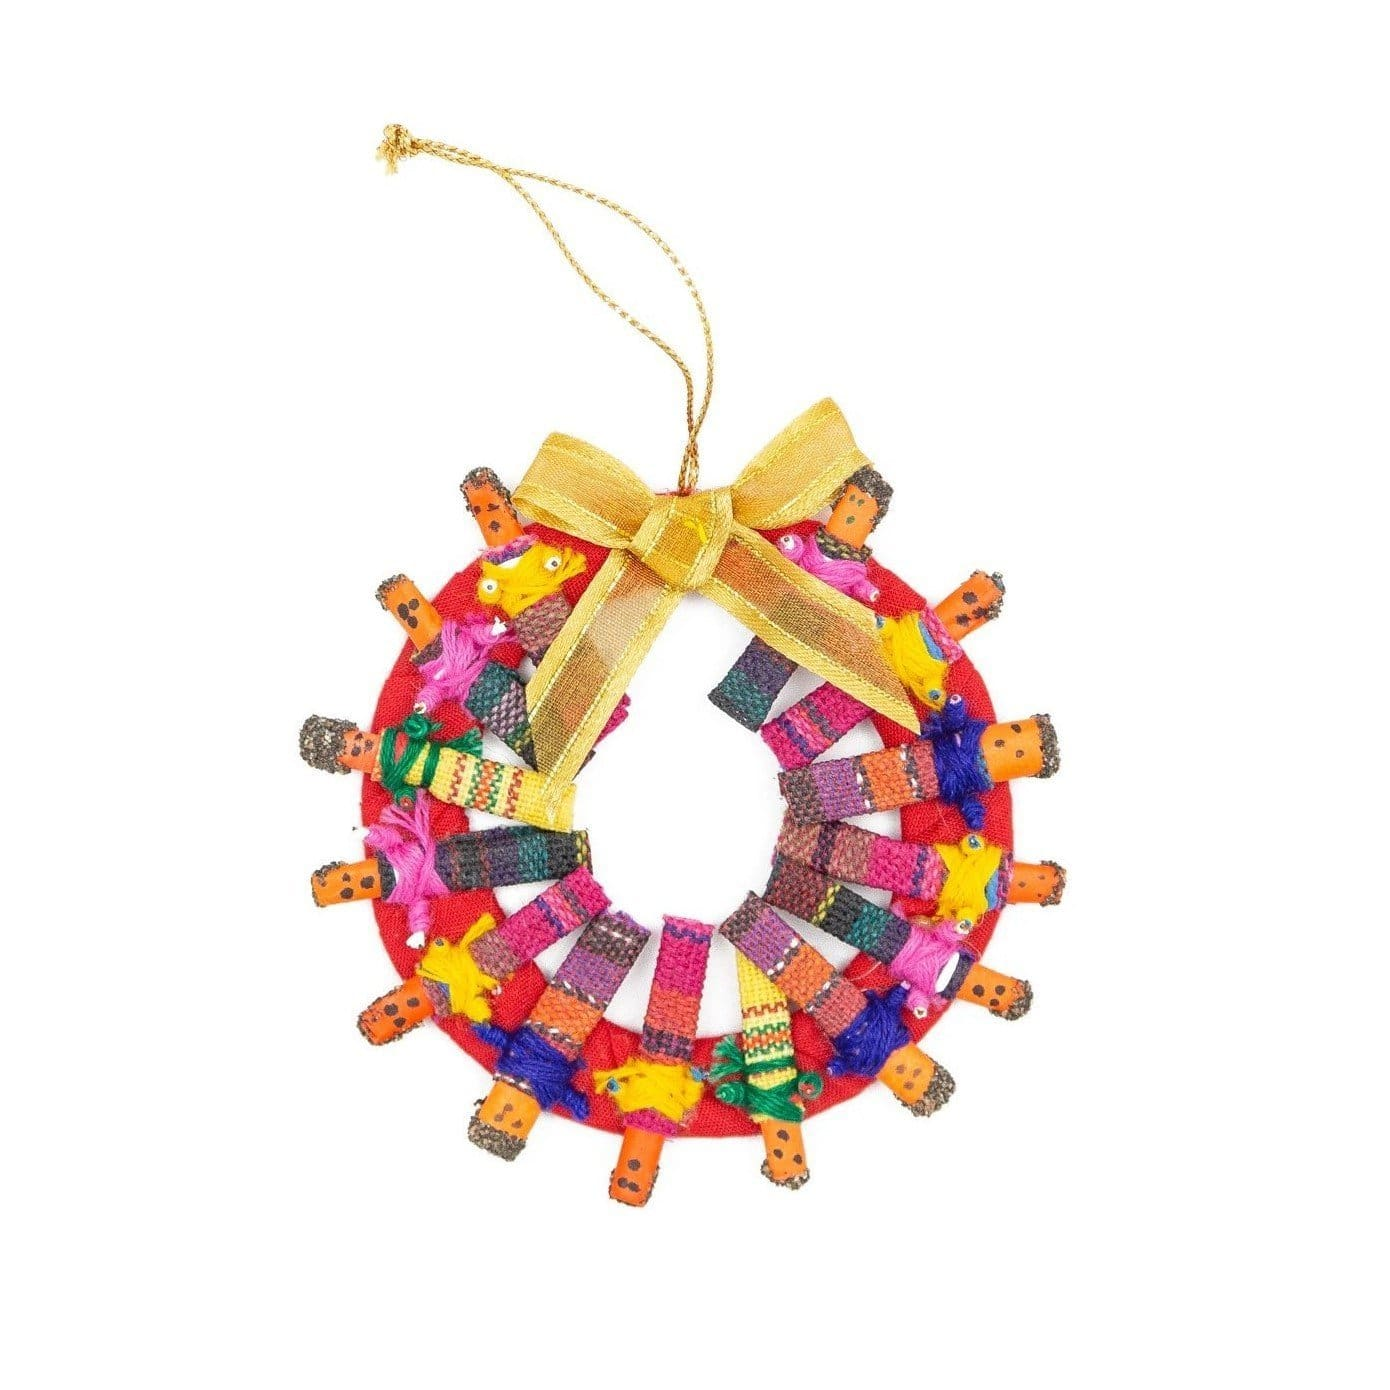 Worry Doll Wreath Ornament